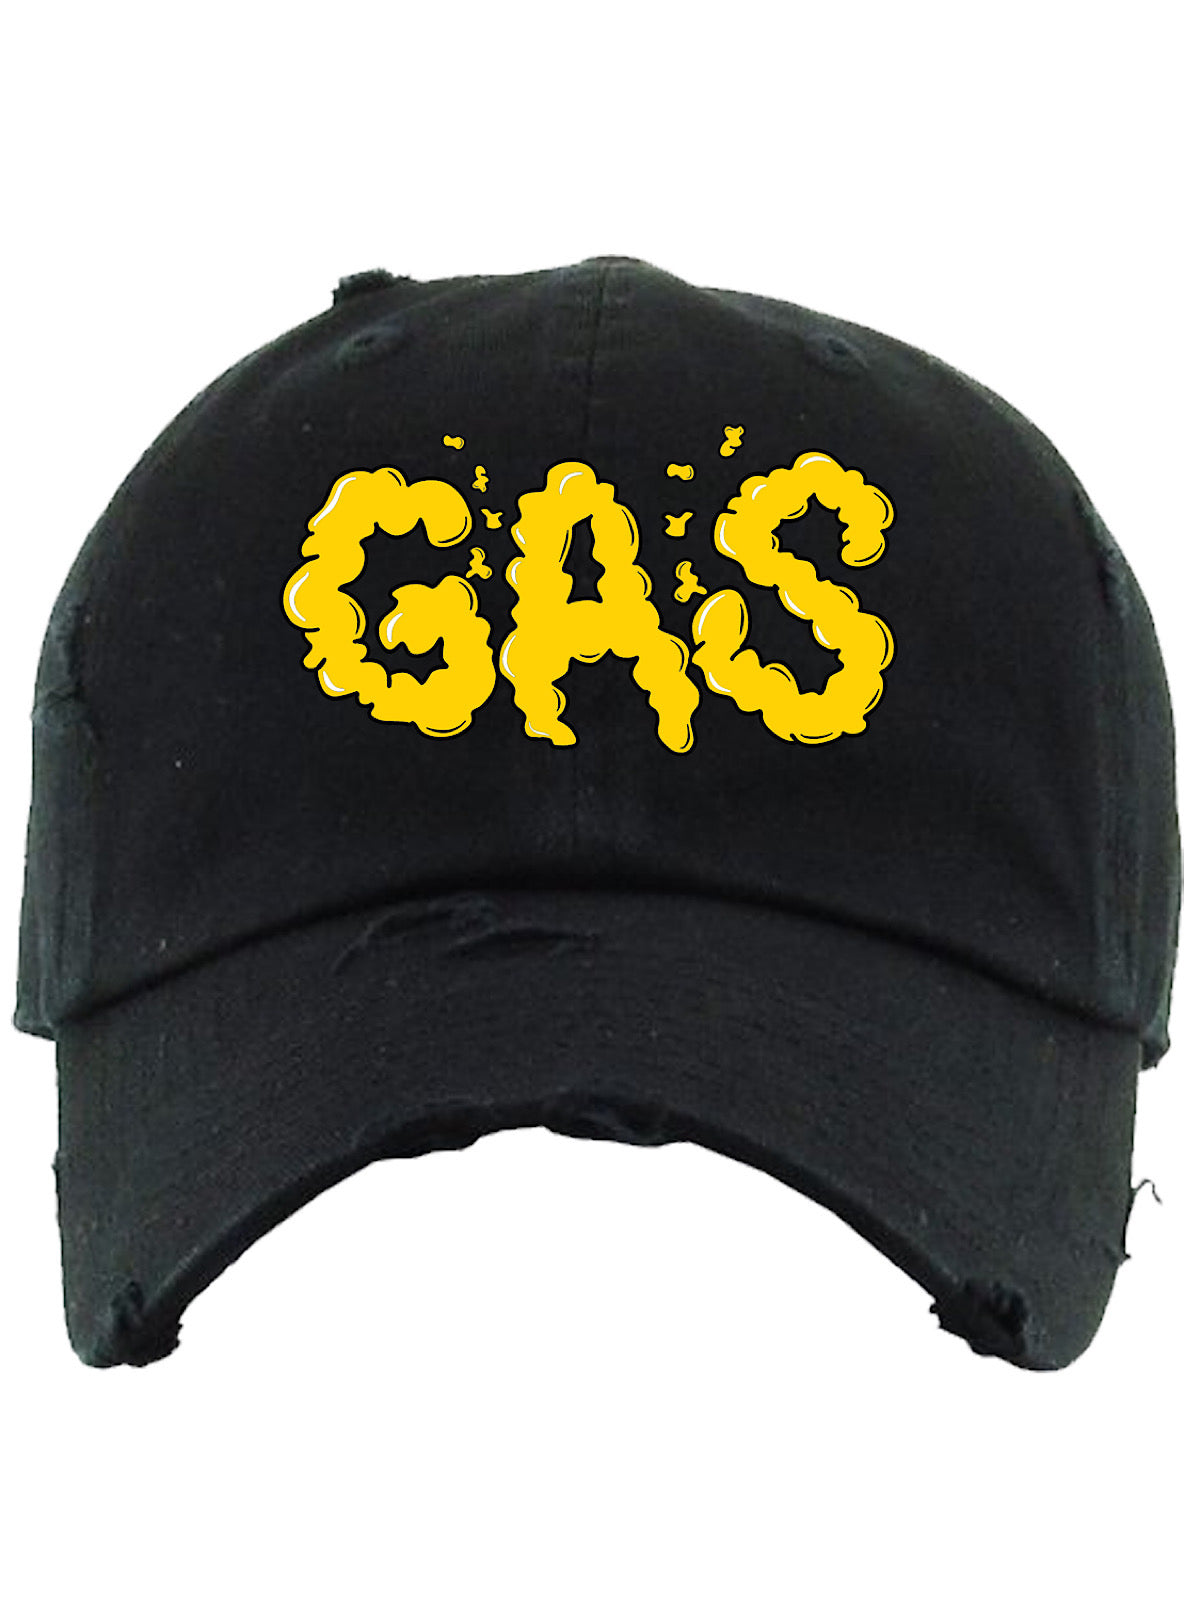 PG Apparel Hat - GAS - Black and Yellow